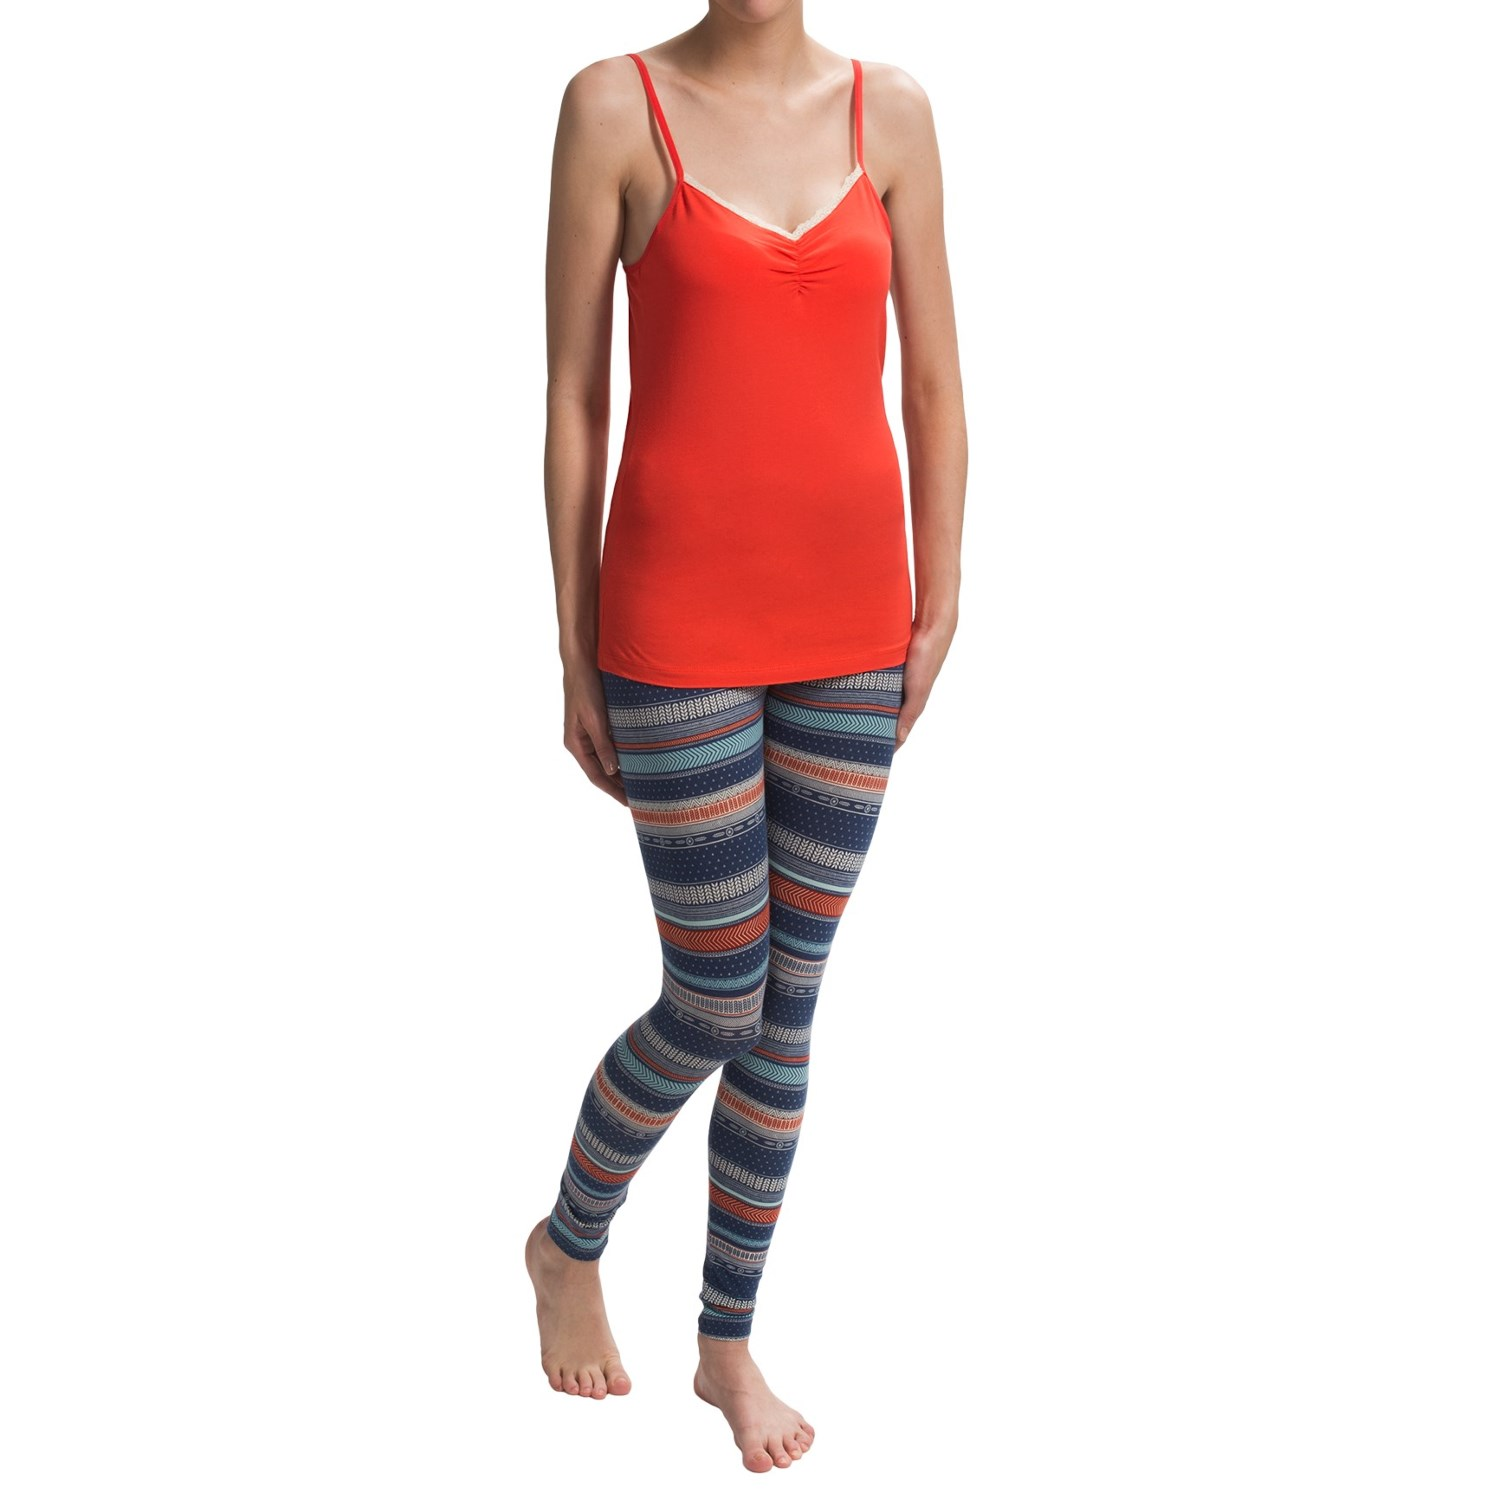 With classic 4-way stretch that naturally moves the way you do, the Manduka E-Cotton High Rise leggings are made with seriously soft fabric that lets you work out without sacrificing comfort. Available at REI, % Satisfaction Guaranteed.